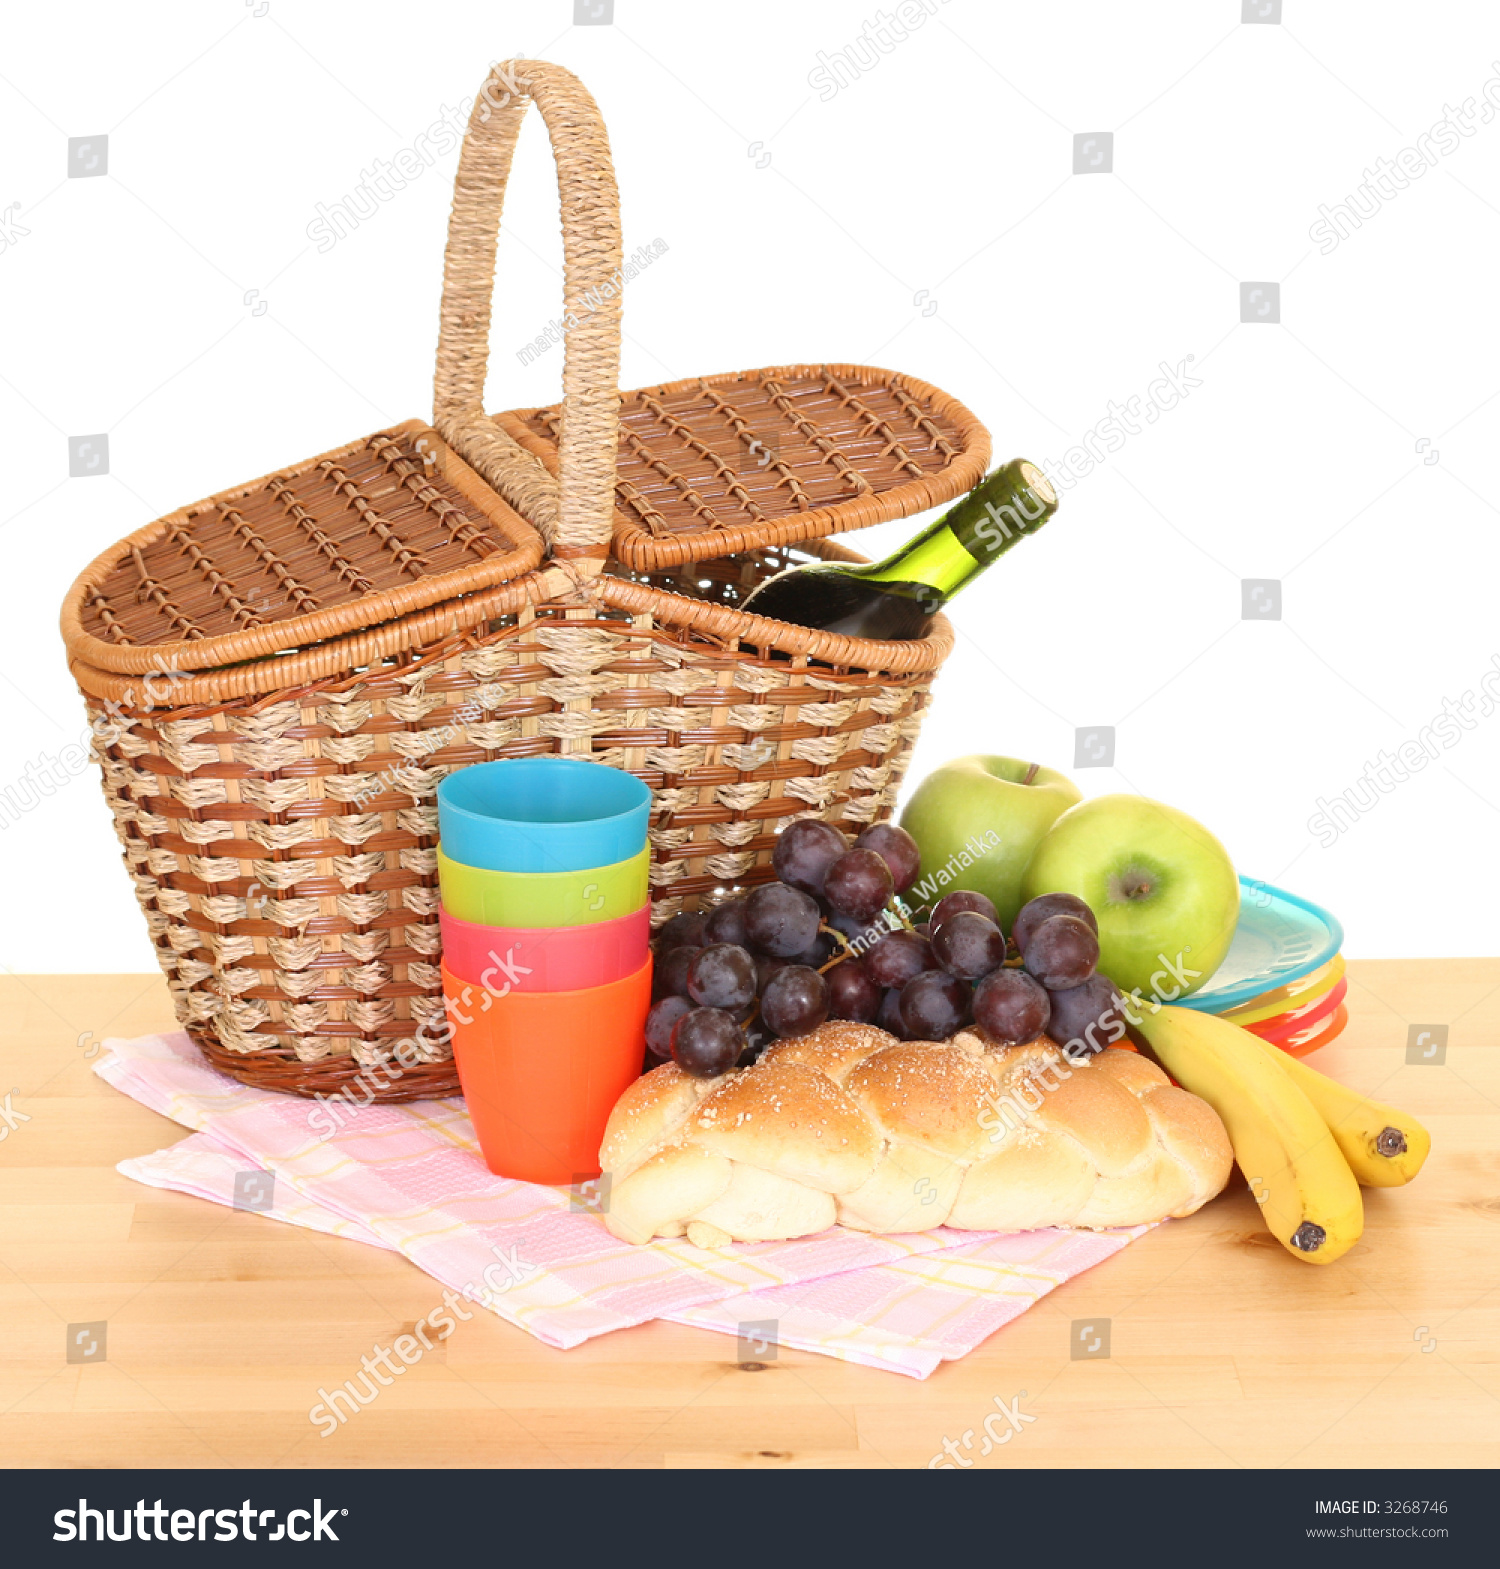 Picnic Basket Food : Picnic basket food ready pack isolated stock photo